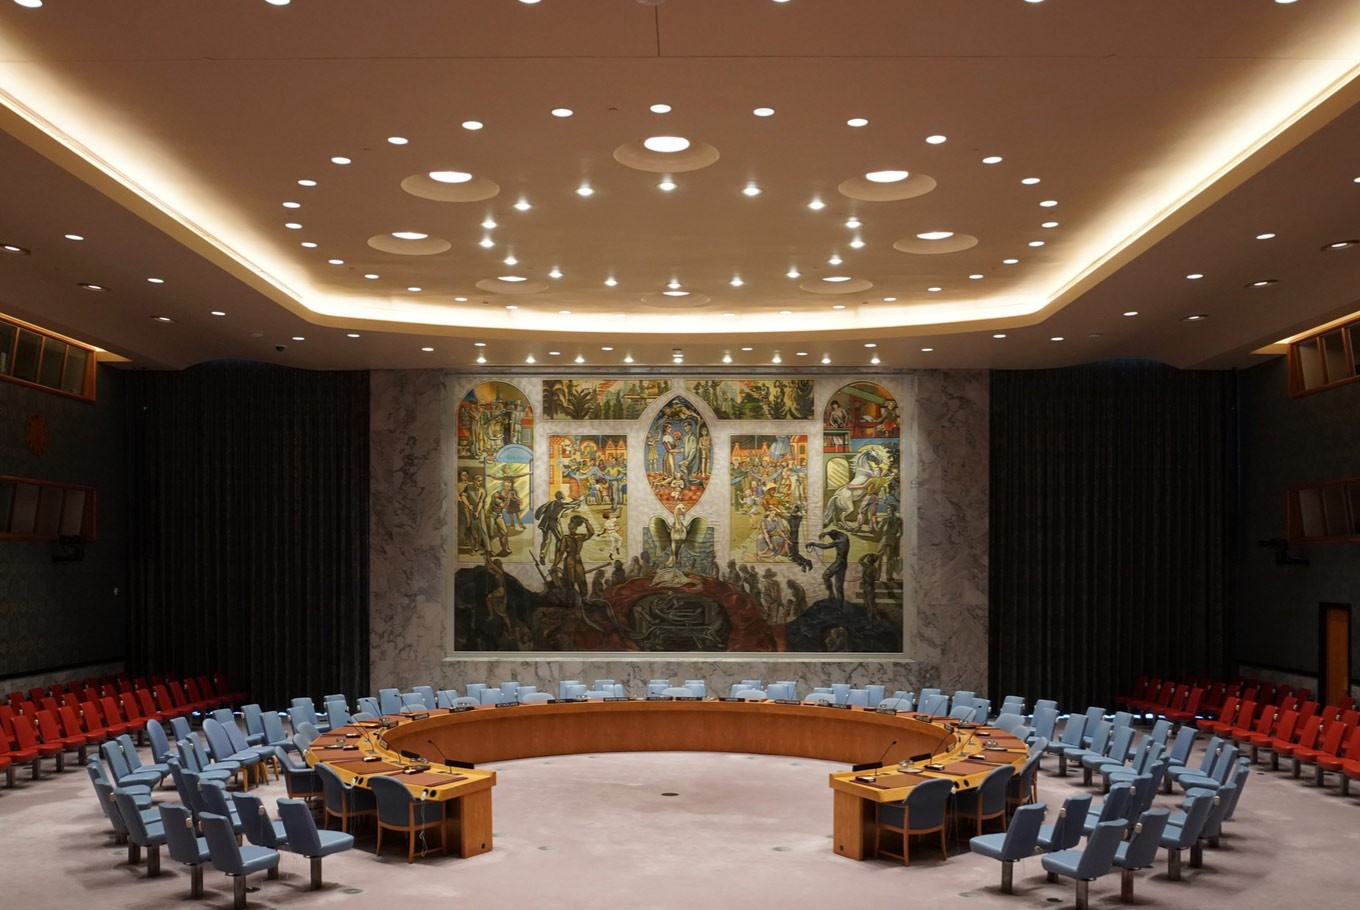 Two seats, one vision for UN Security Council